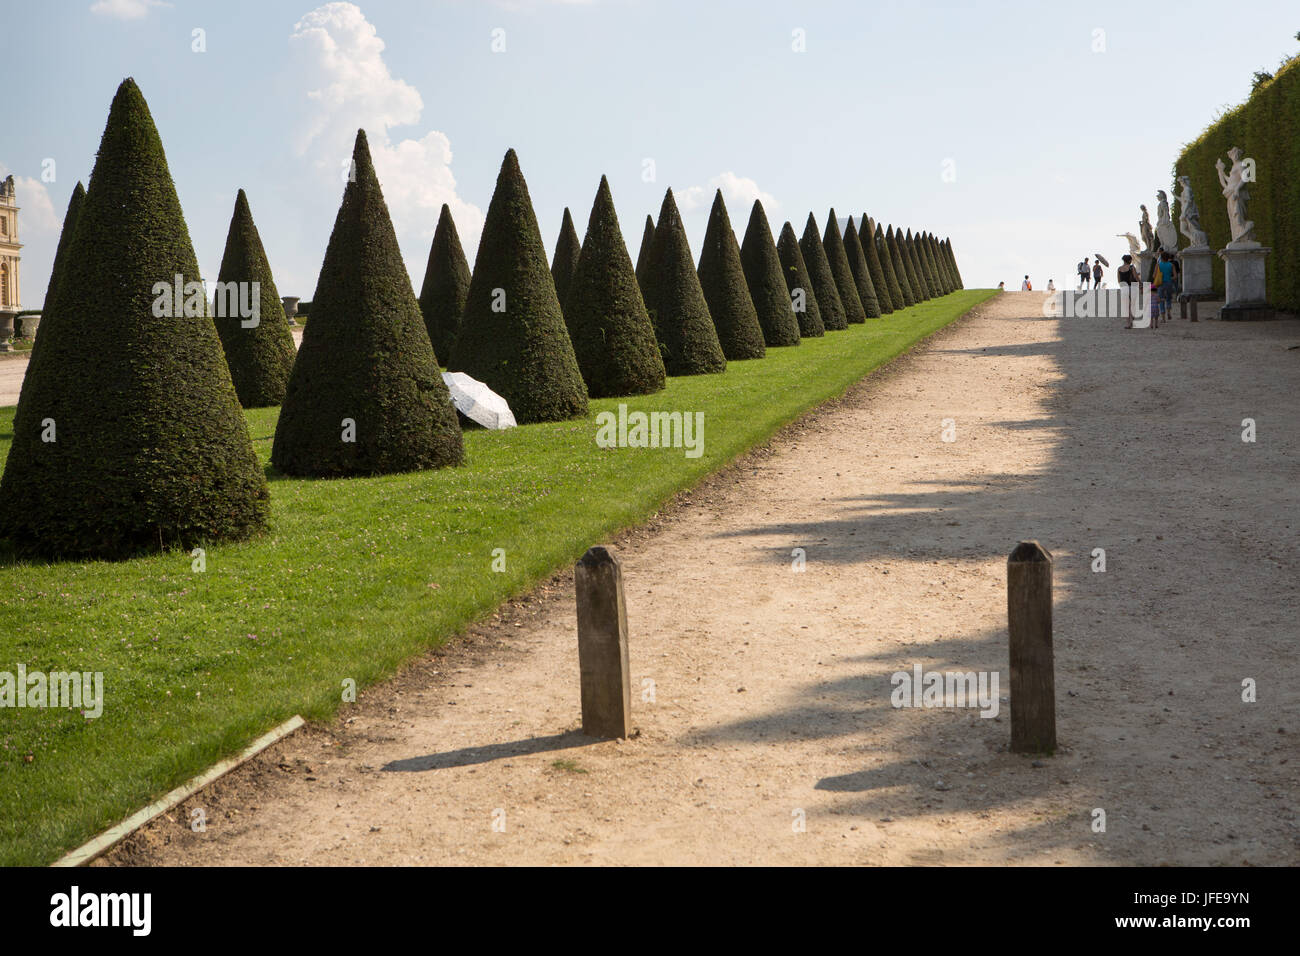 People use umbrellas for shade near groomed trees in the gardens at the Palace of Versailles. - Stock Image